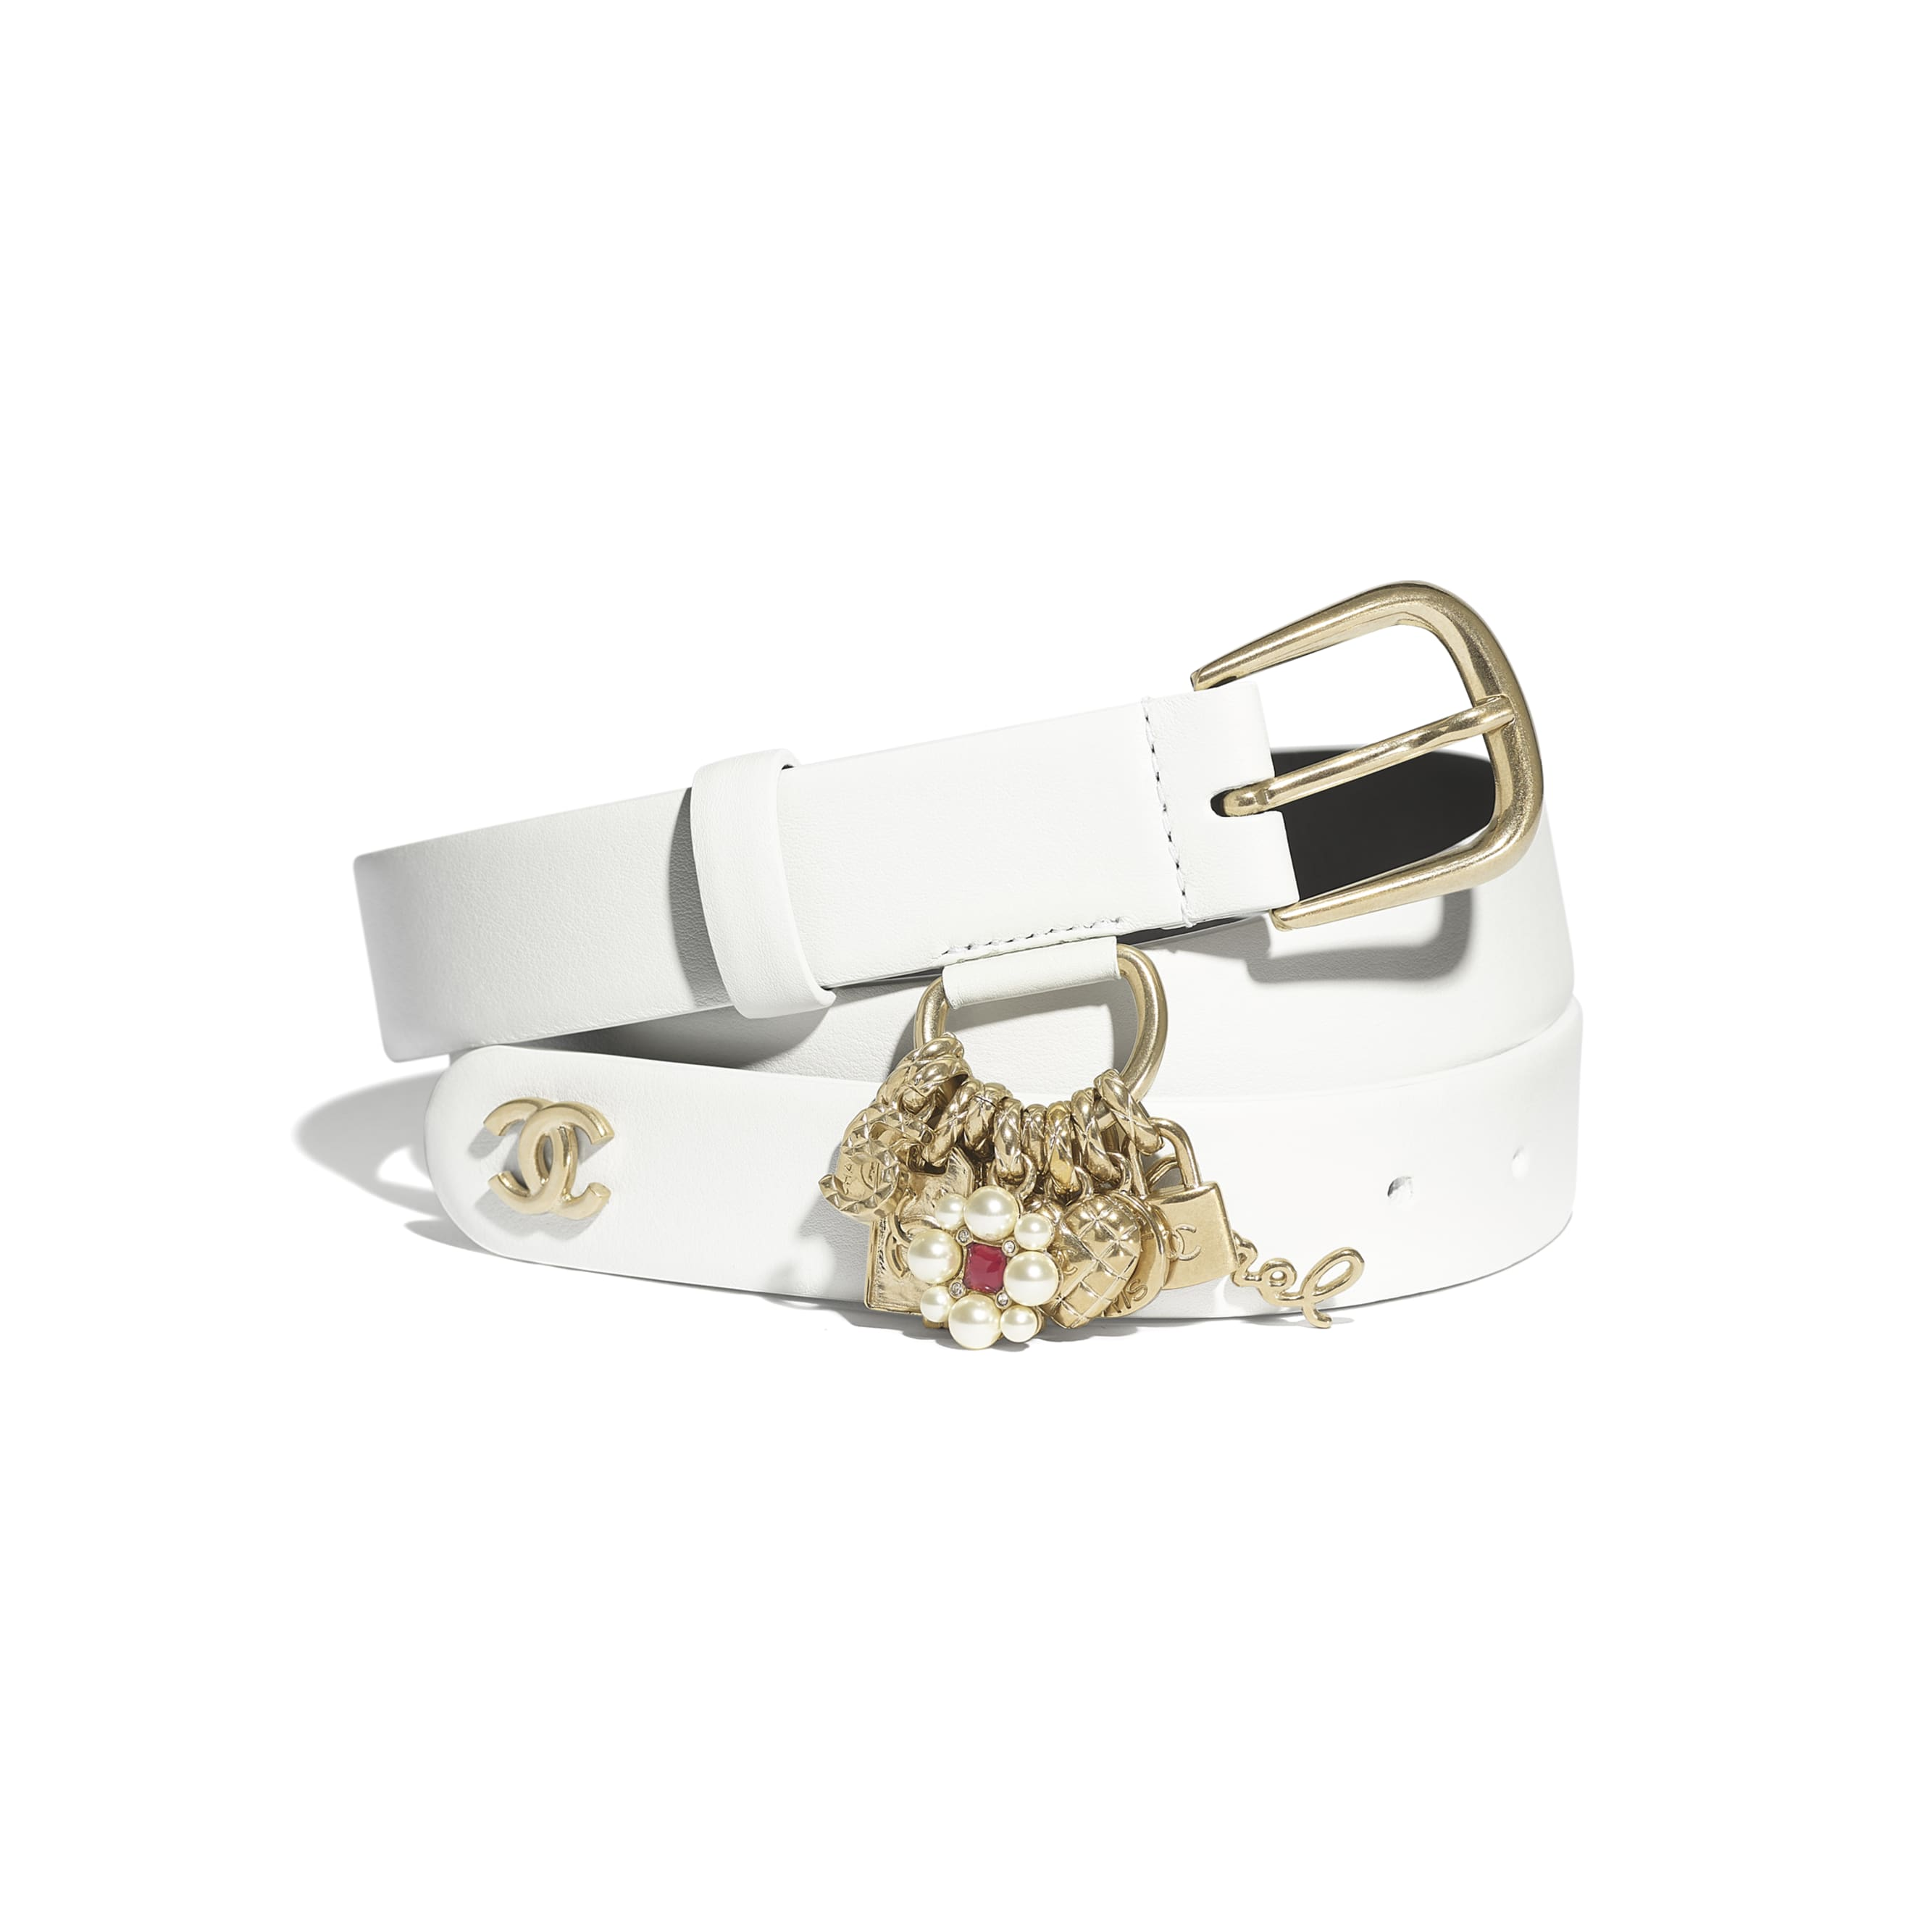 Belt - White - Calfskin, Gold-Tone Metal & Glass Pearls - CHANEL - Default view - see standard sized version